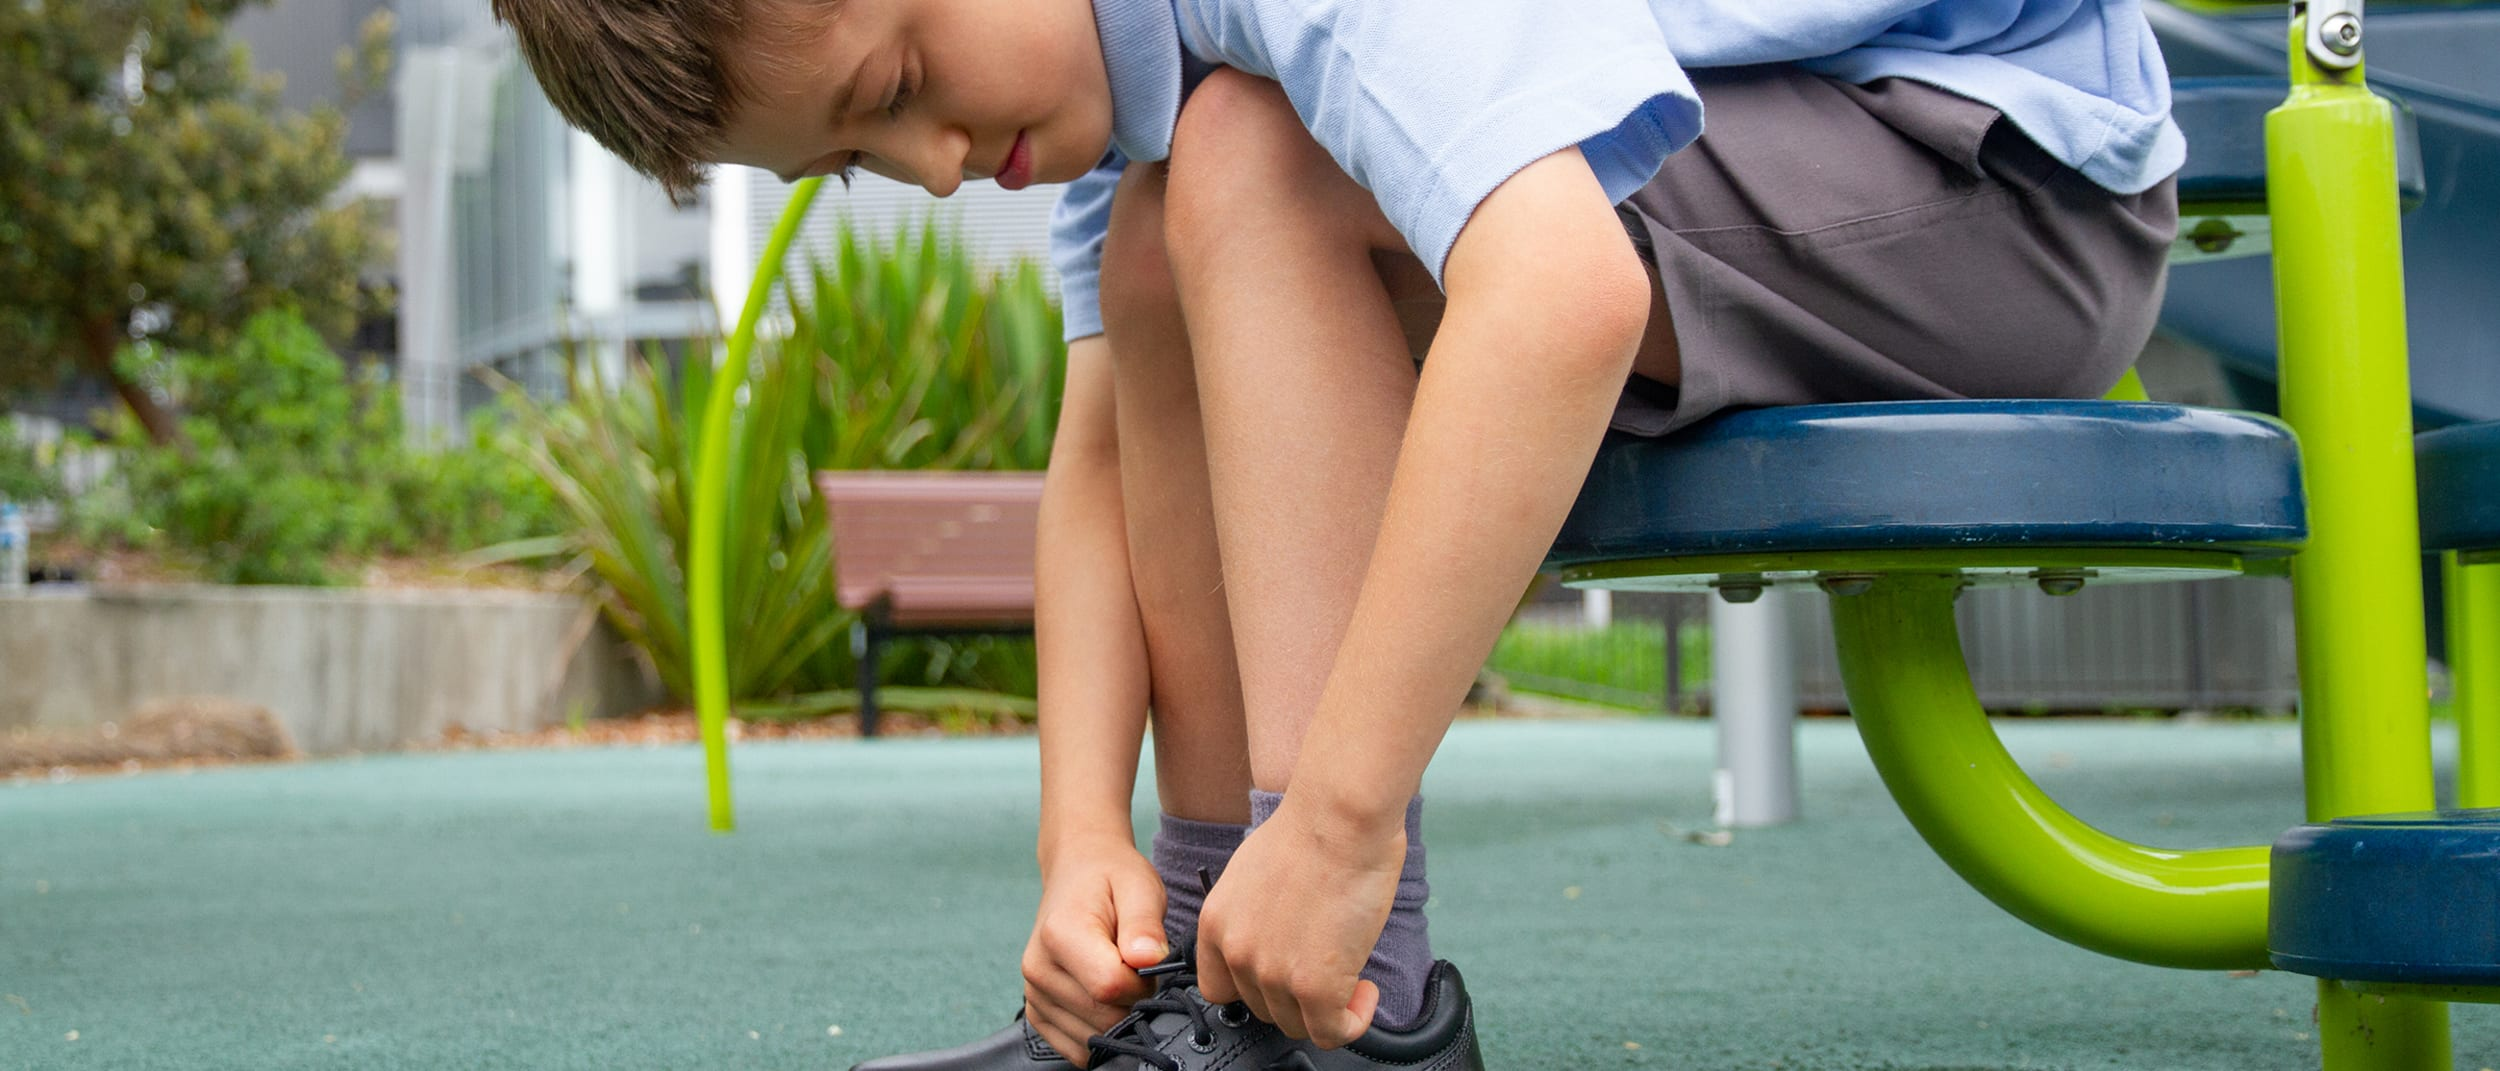 The Athlete's Foot: Learn to tie your shoe laces!